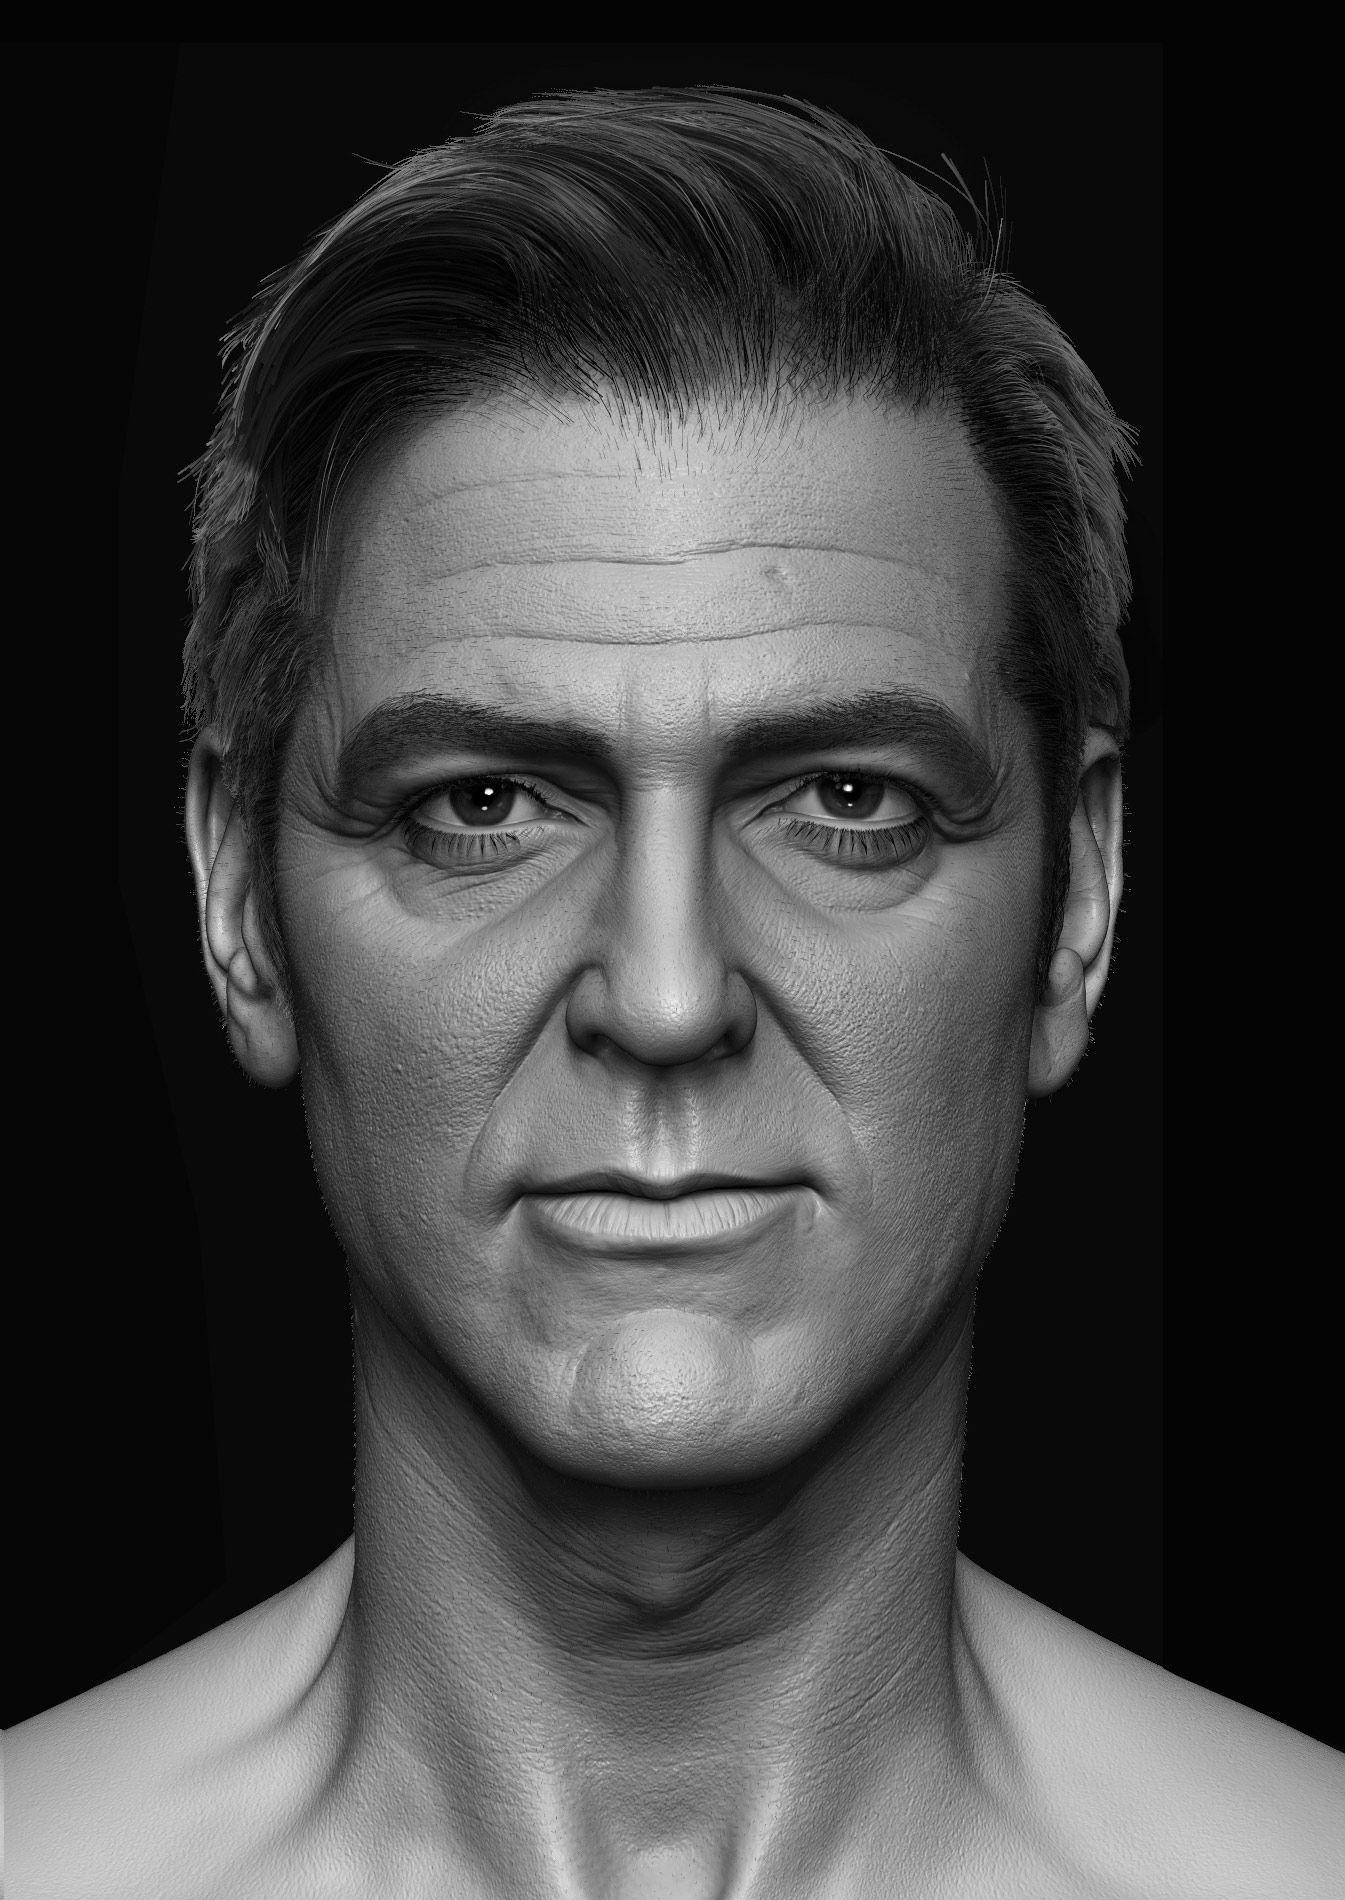 Making of George Clooney likeness in ZBrush by Hossein Diba – zbrush ...